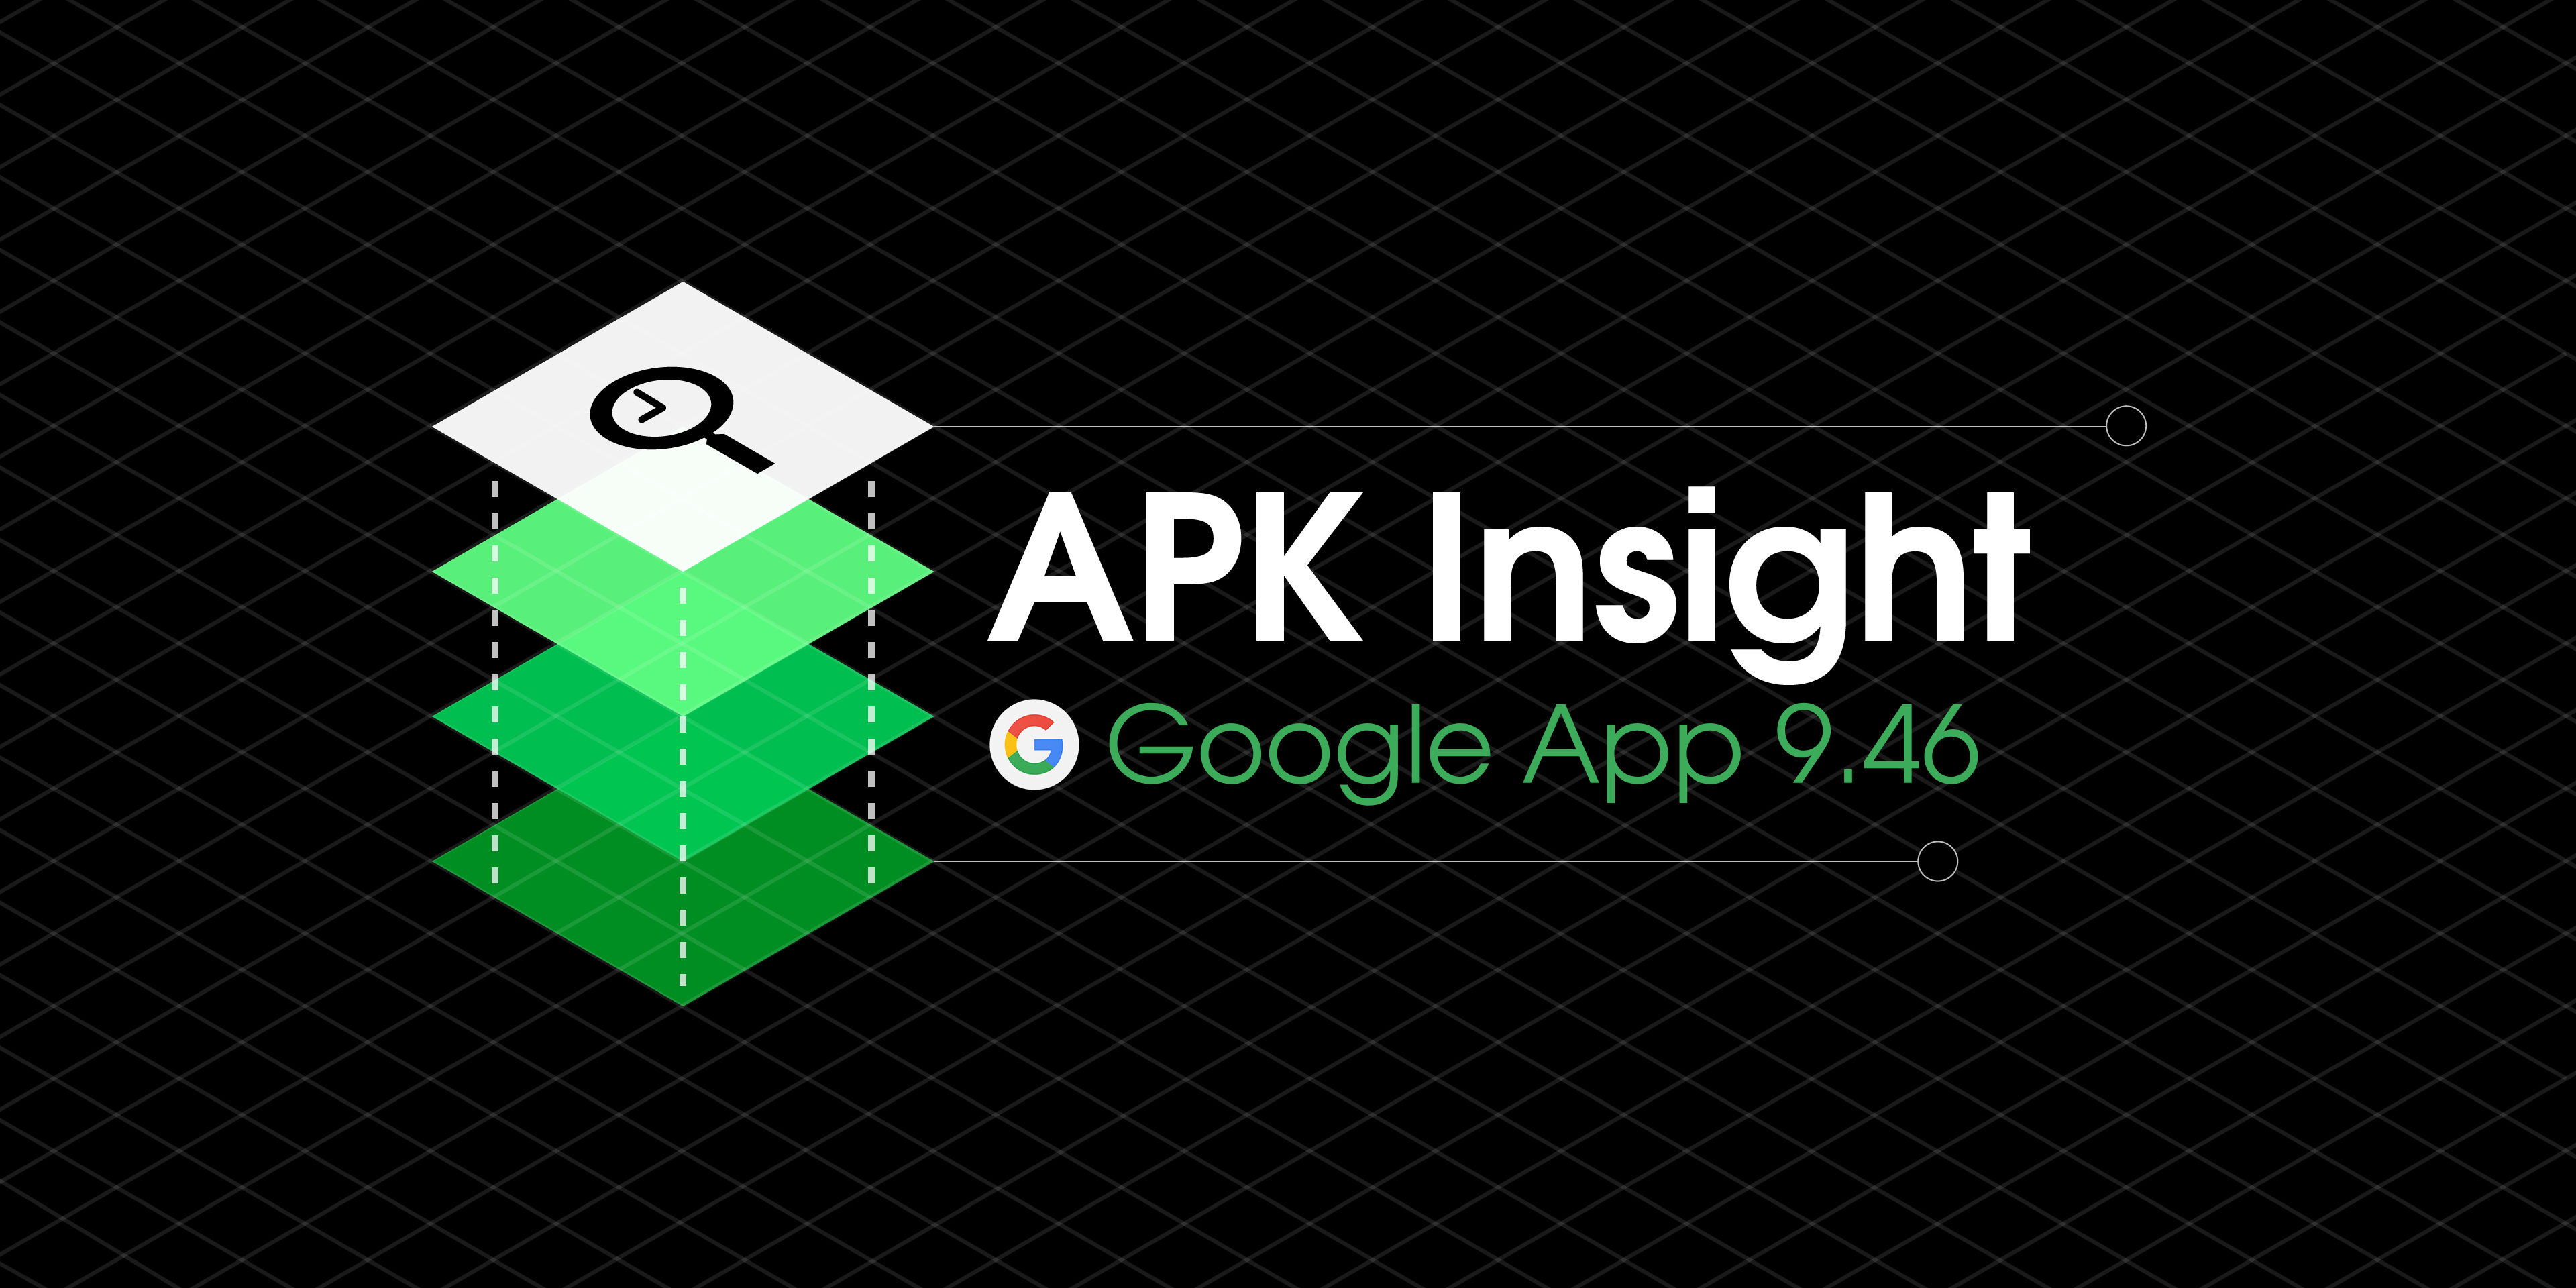 Google app 9.46 preps new Family Group setup, rolls back some Material Theme UIs [APK Insight]